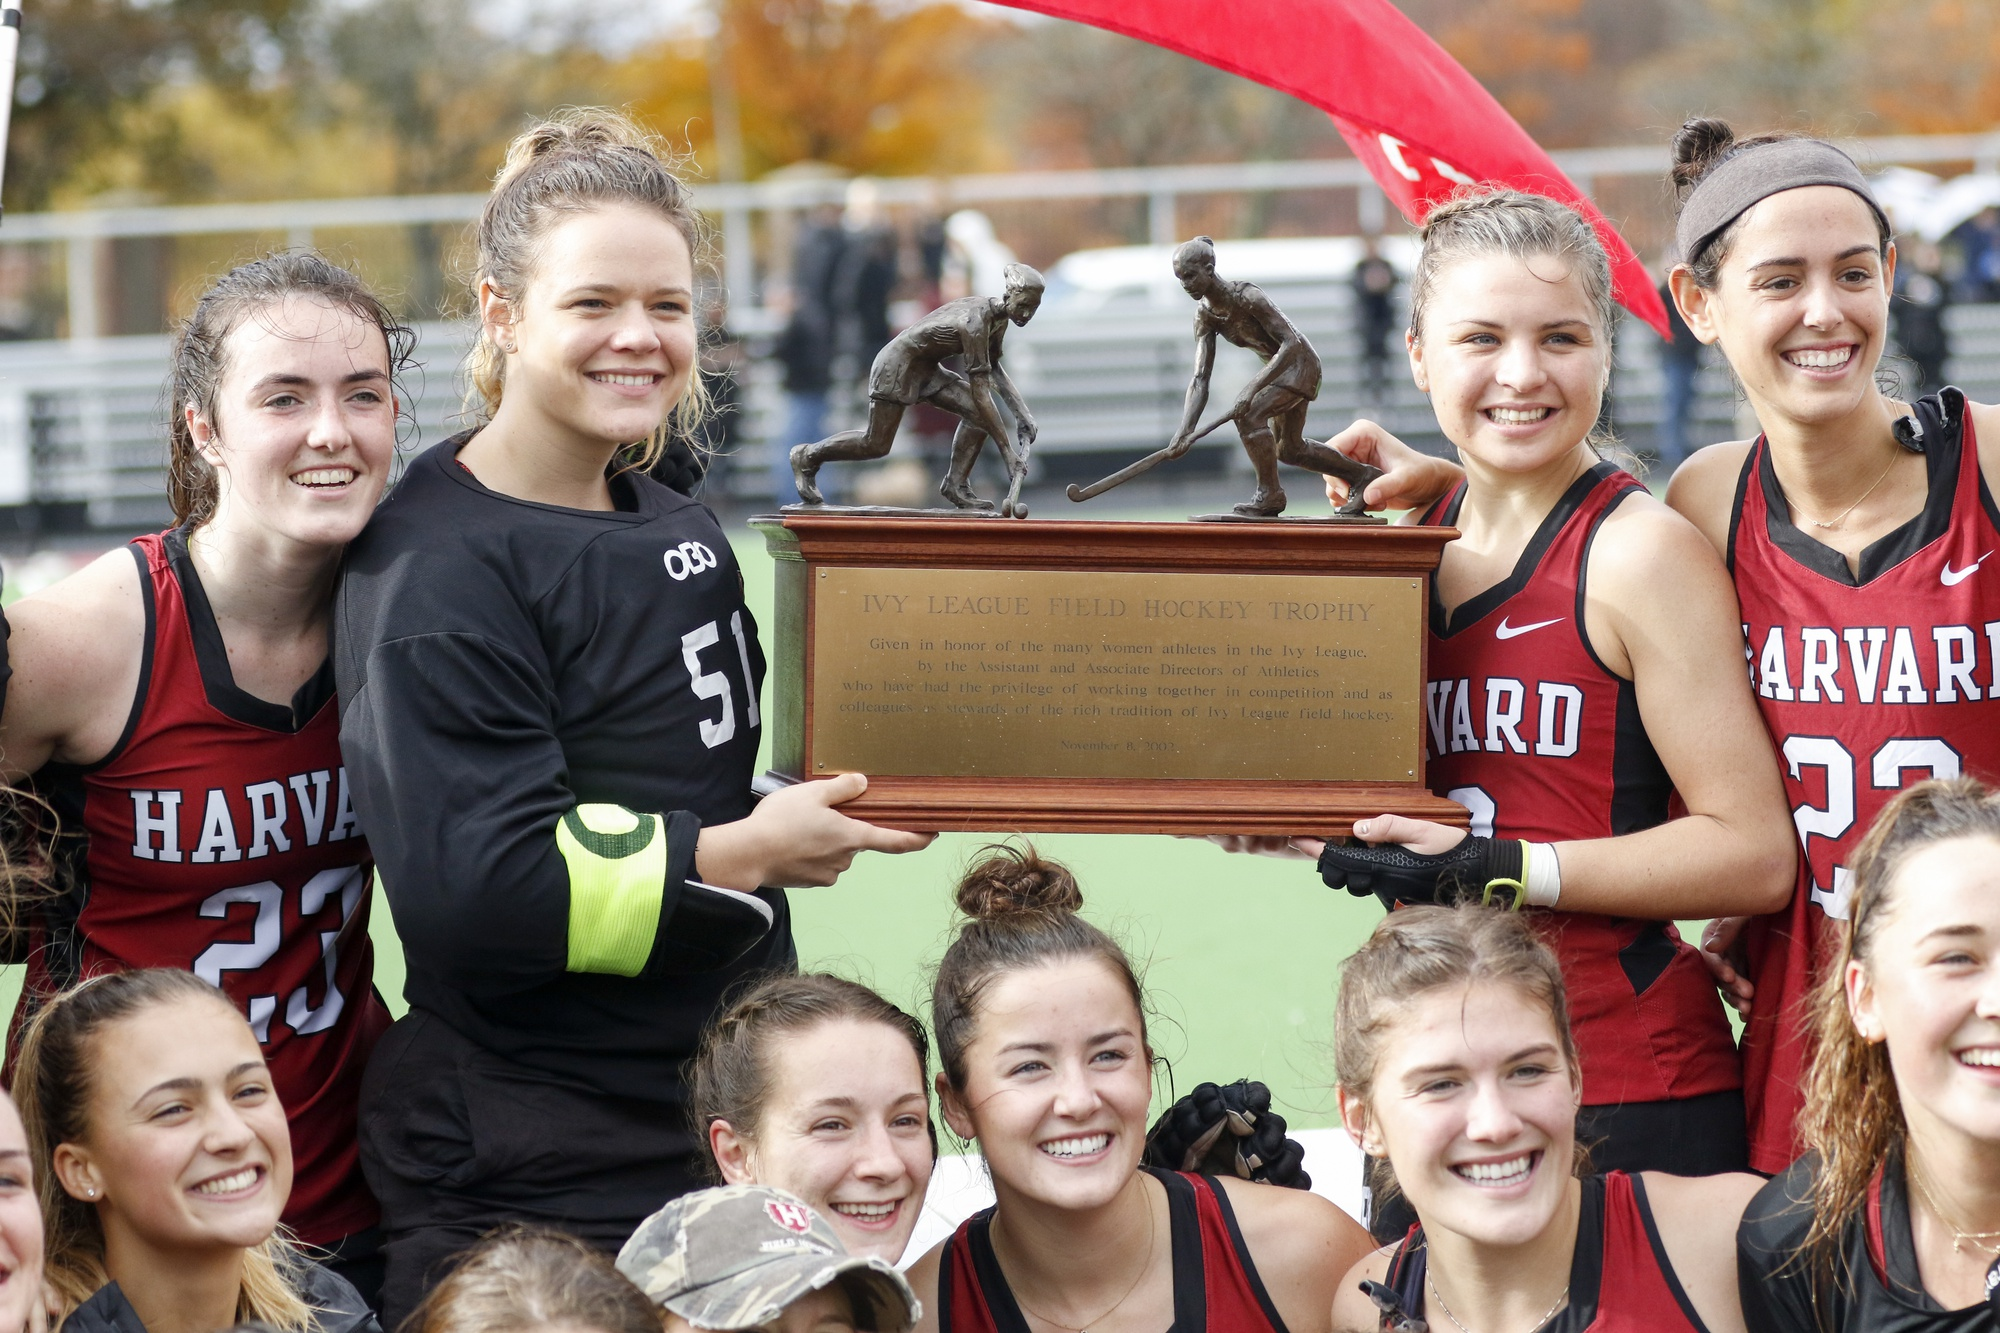 The field hockey team, ranked sixth in the nation, gathers around to pose with the Ivy League trophy.